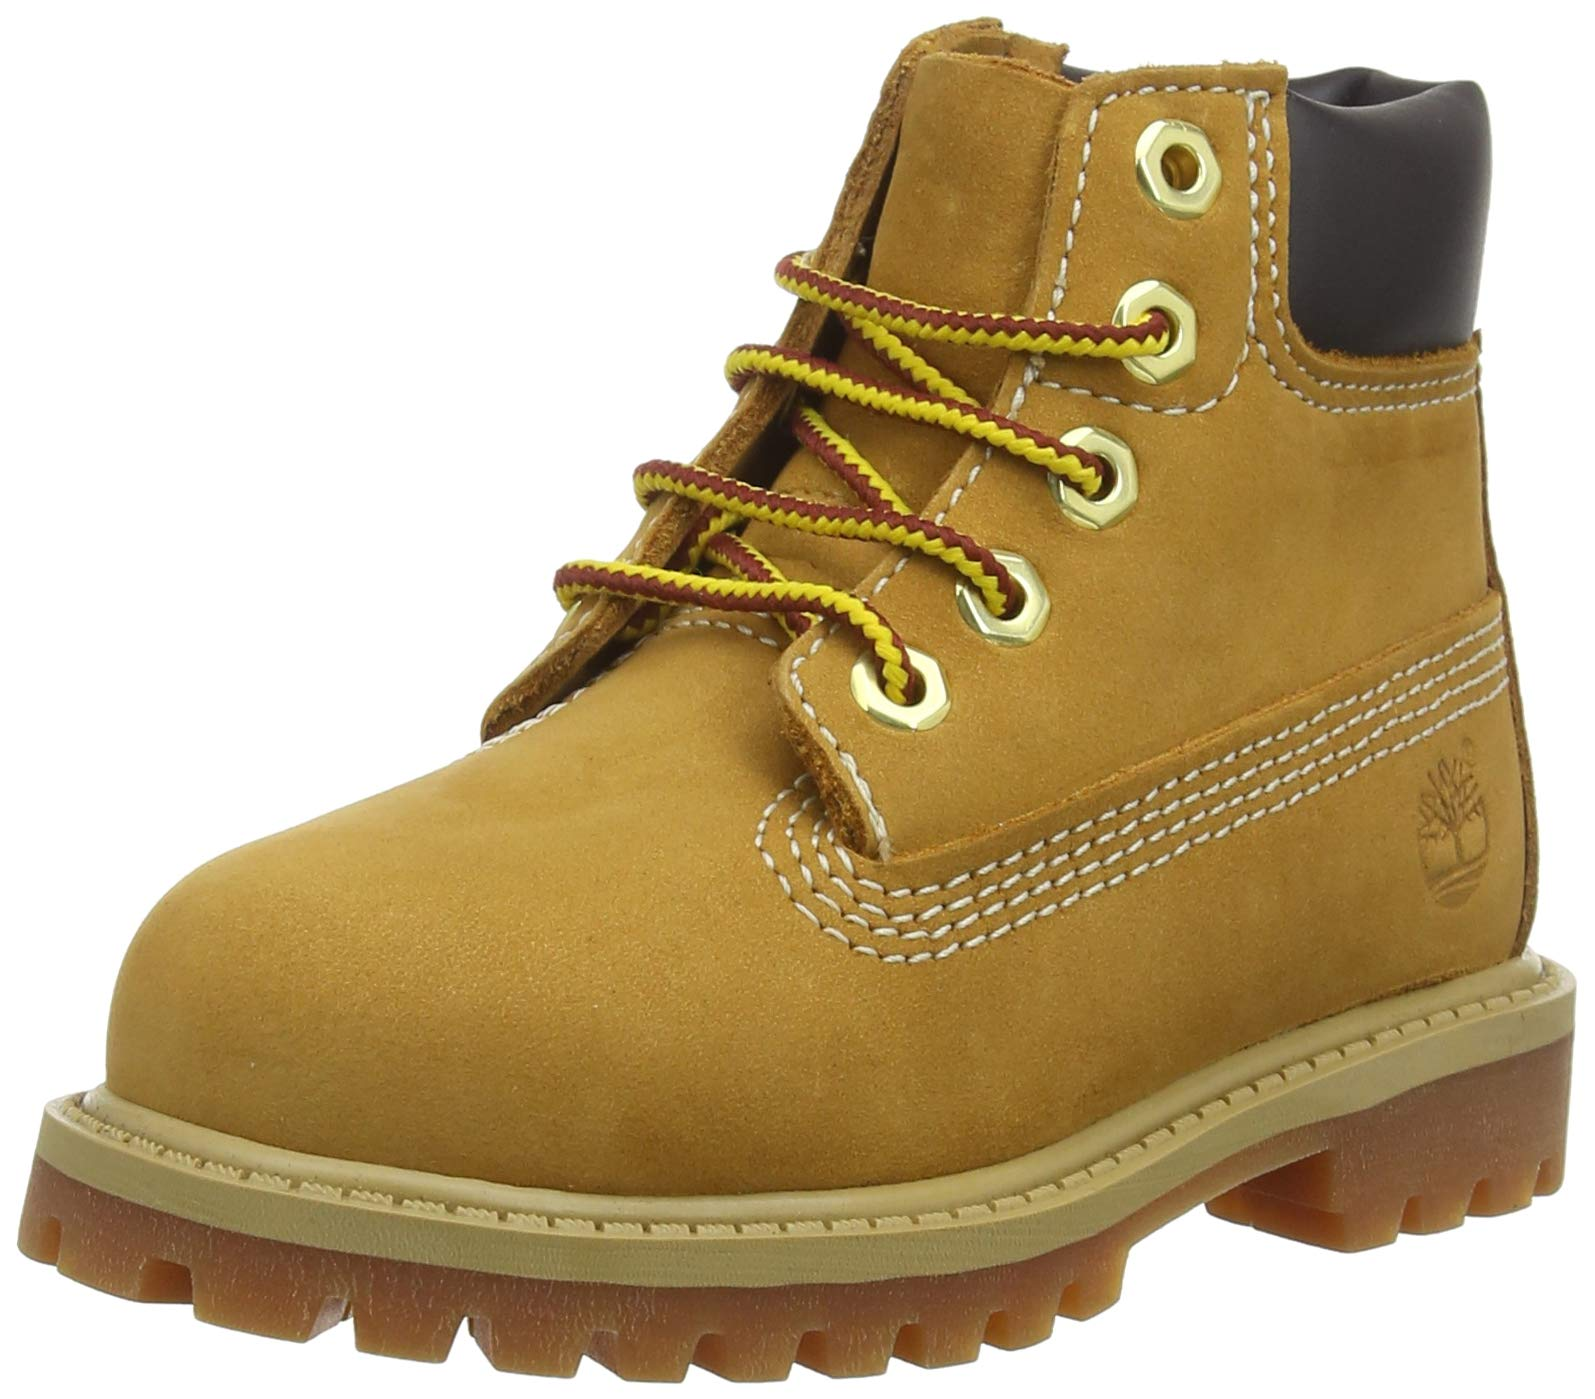 Timberland Baby 6 in Classic Boot Ankle, Wheat, 9 Medium US Toddler